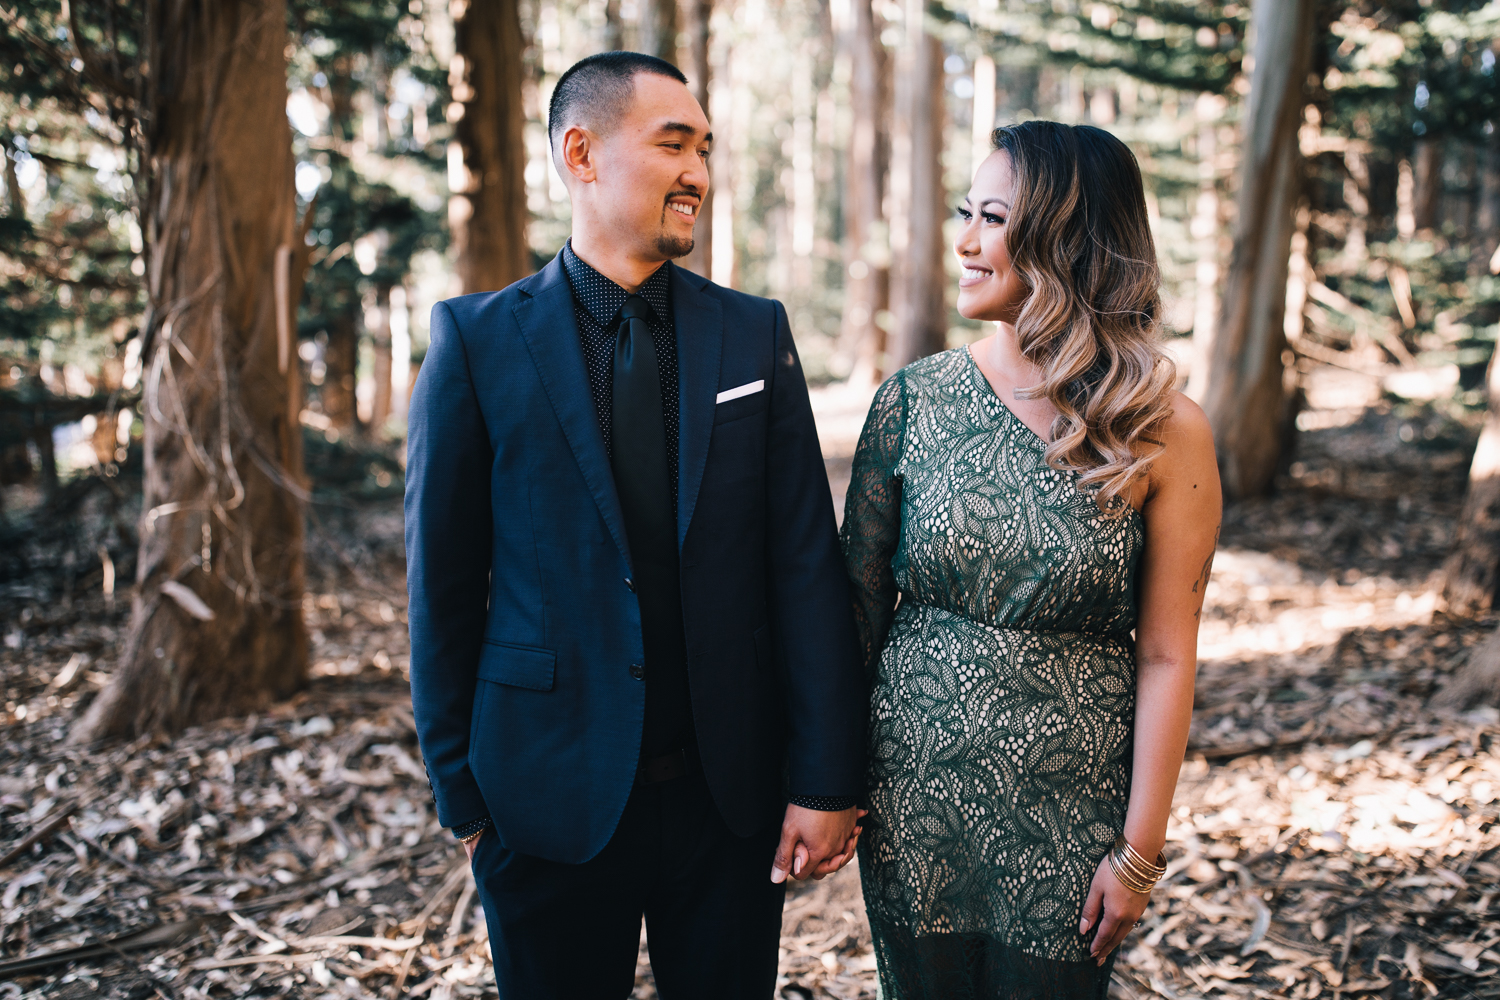 2018_11_ 042018.11.4 Leah + Ed Engagement Session Blog photos Edited For Web 0017.jpg